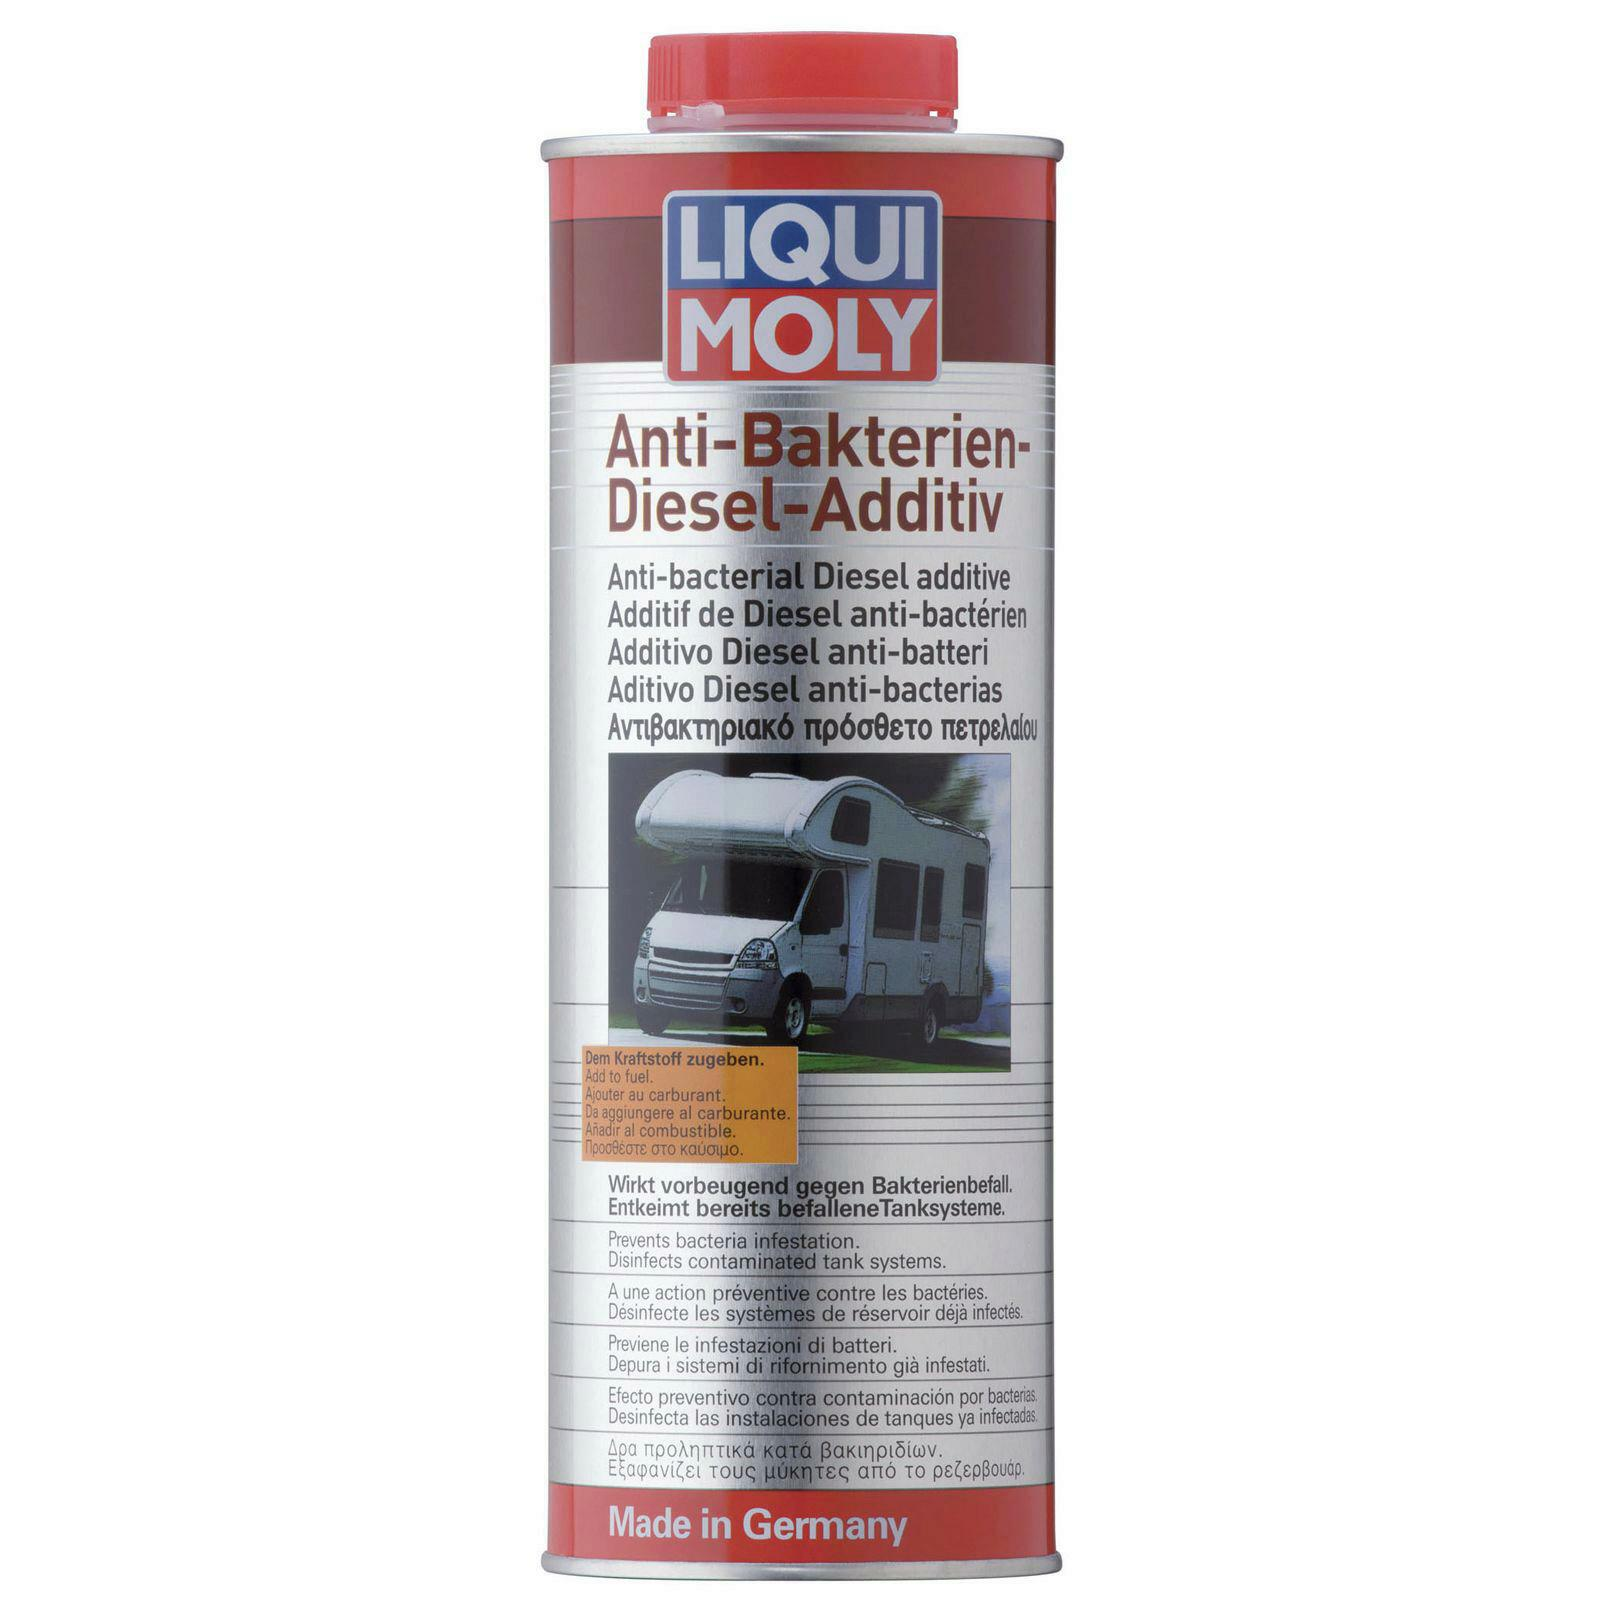 Liqui Moly Anti-Bakterien-Diesel-Additiv 1l